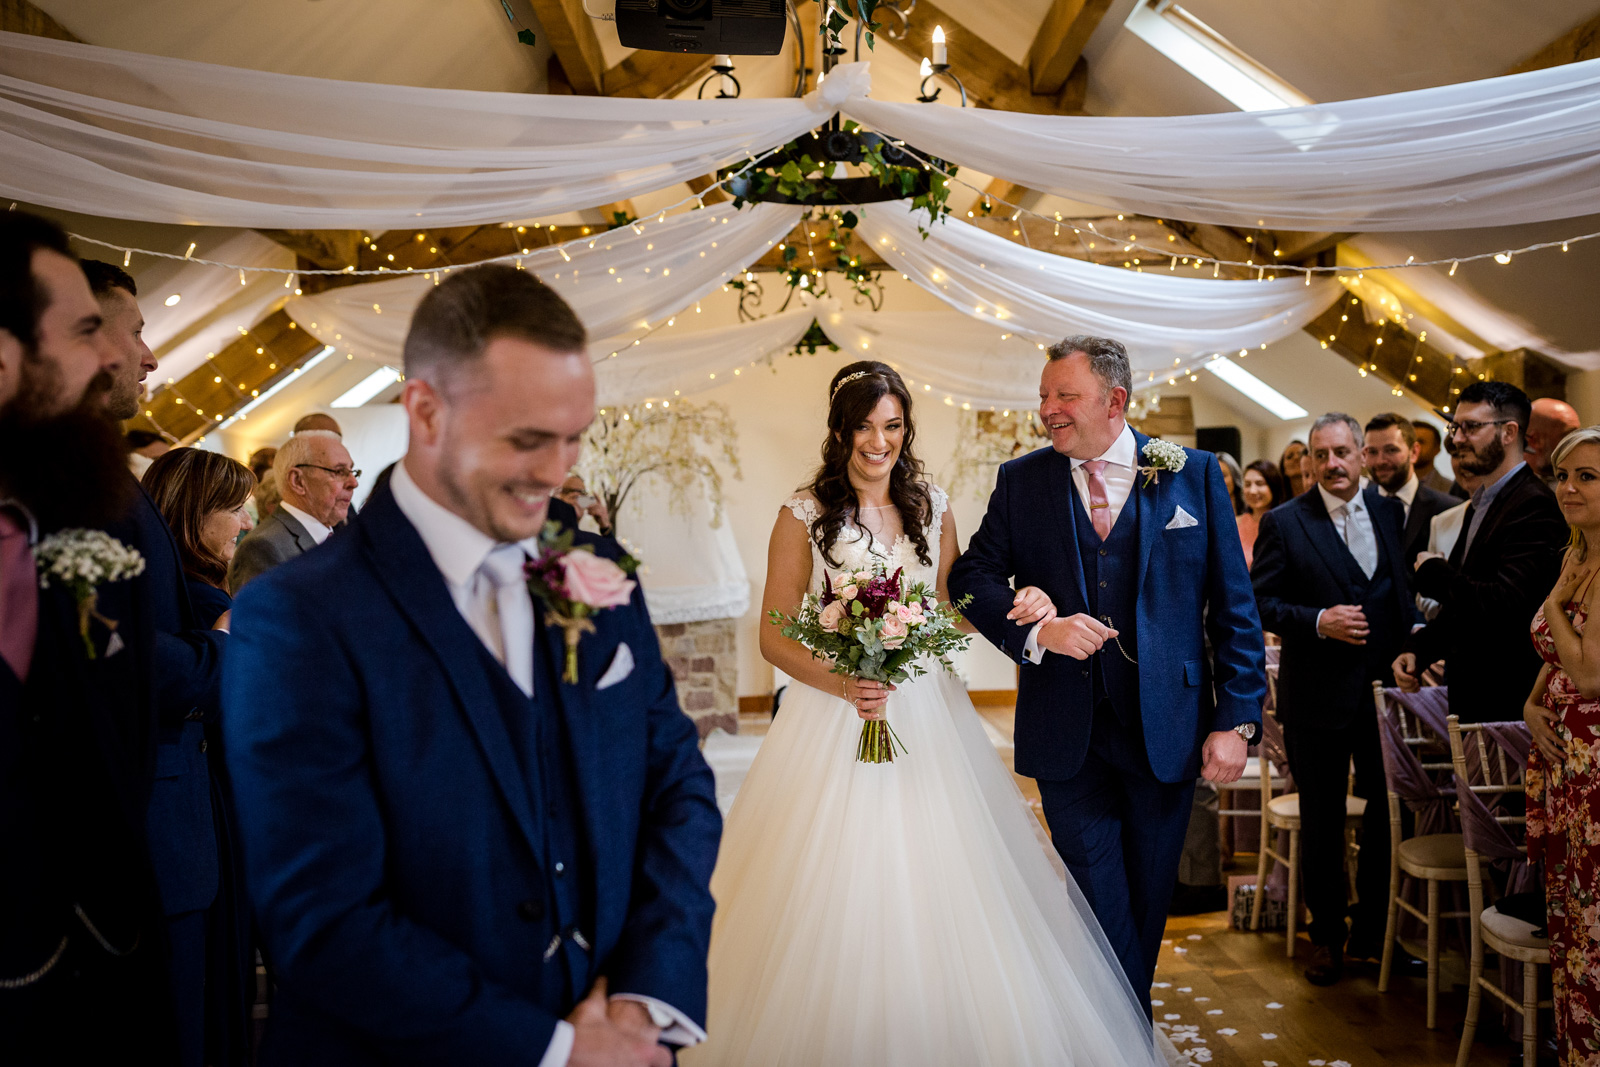 Leanne & Paul's Beeston Manor Wedding